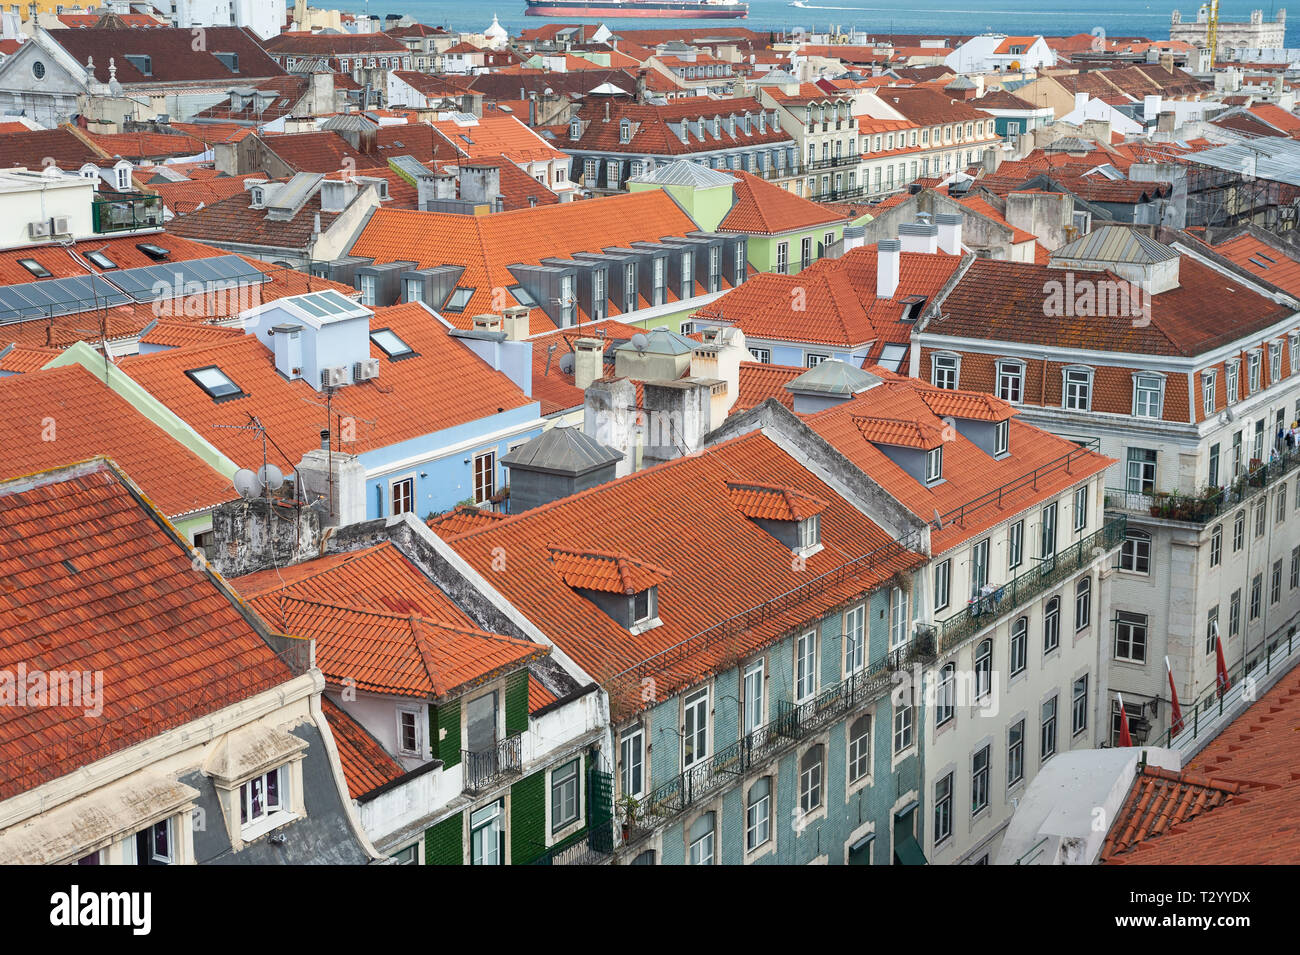 11.06.2018, Lisbon, Portugal, Europe - An elevated view of buildings in the historic city district Baixa. Stock Photo